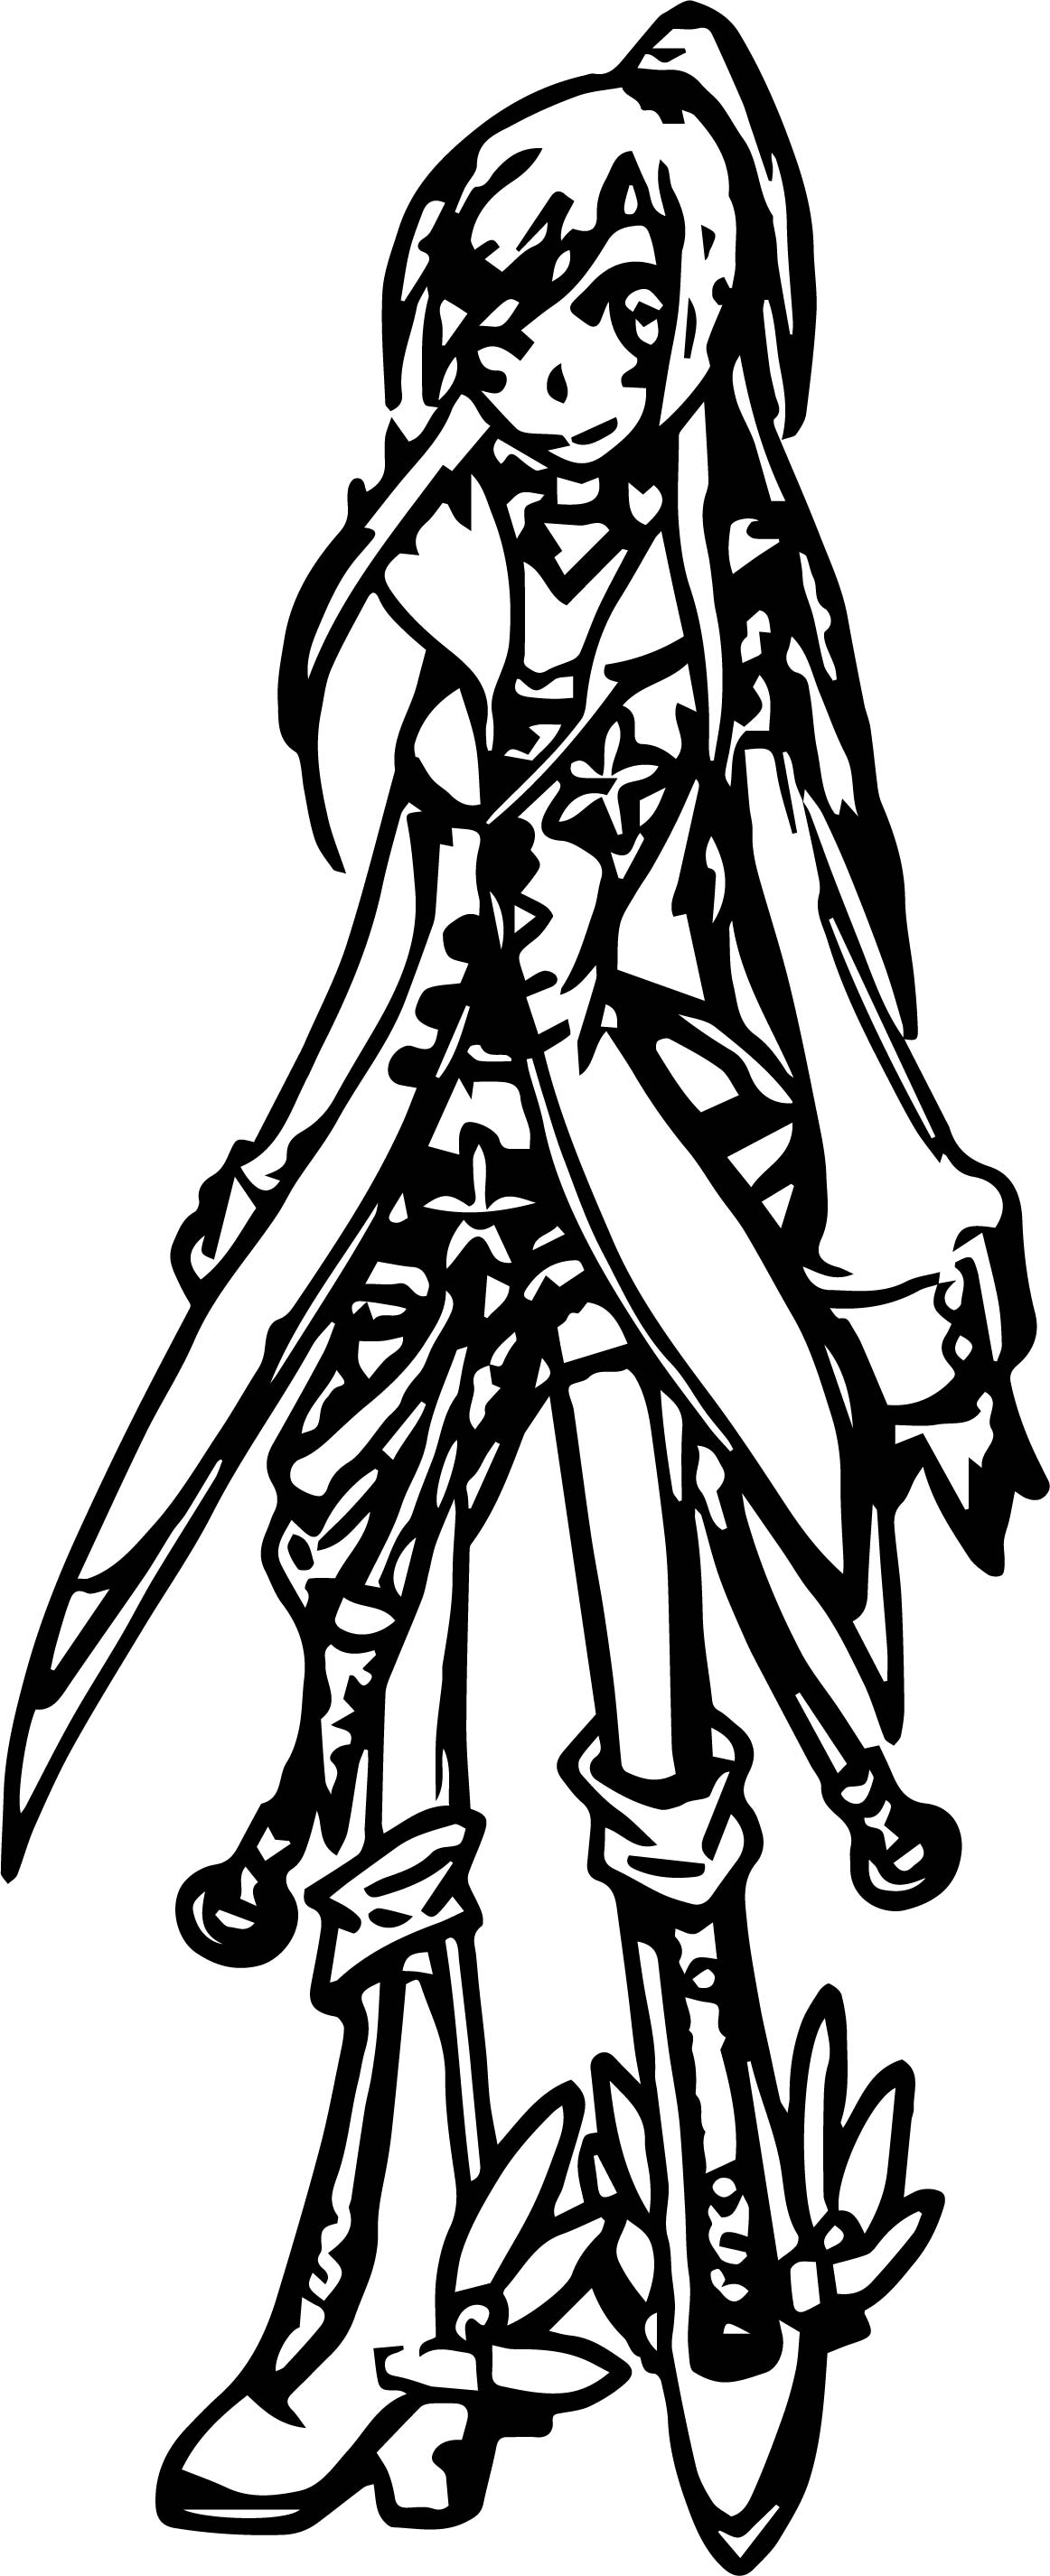 Whit S Character Coloring Page